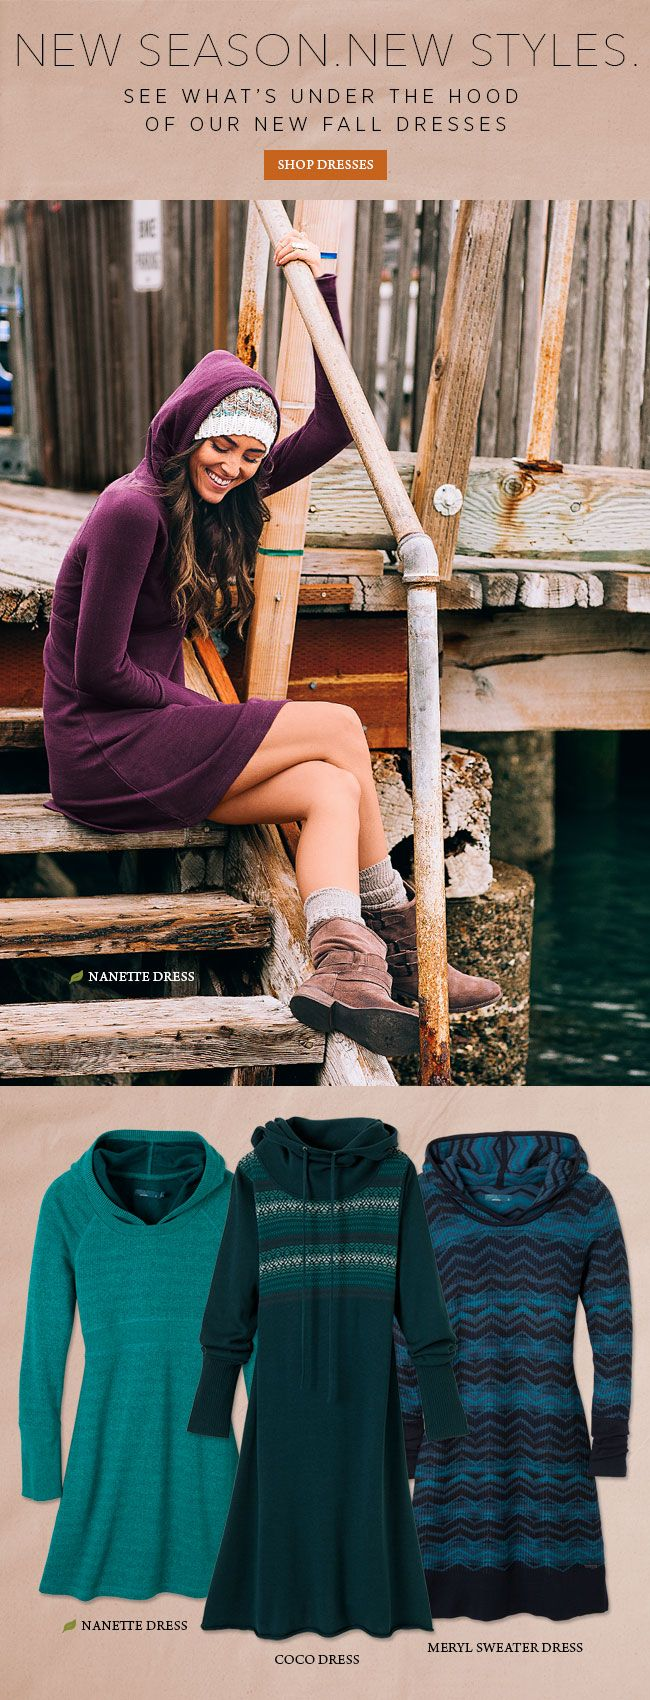 Our new 'Fall Dresses' may be your go-to favorites. Find yours now. #fashion #style #comfort